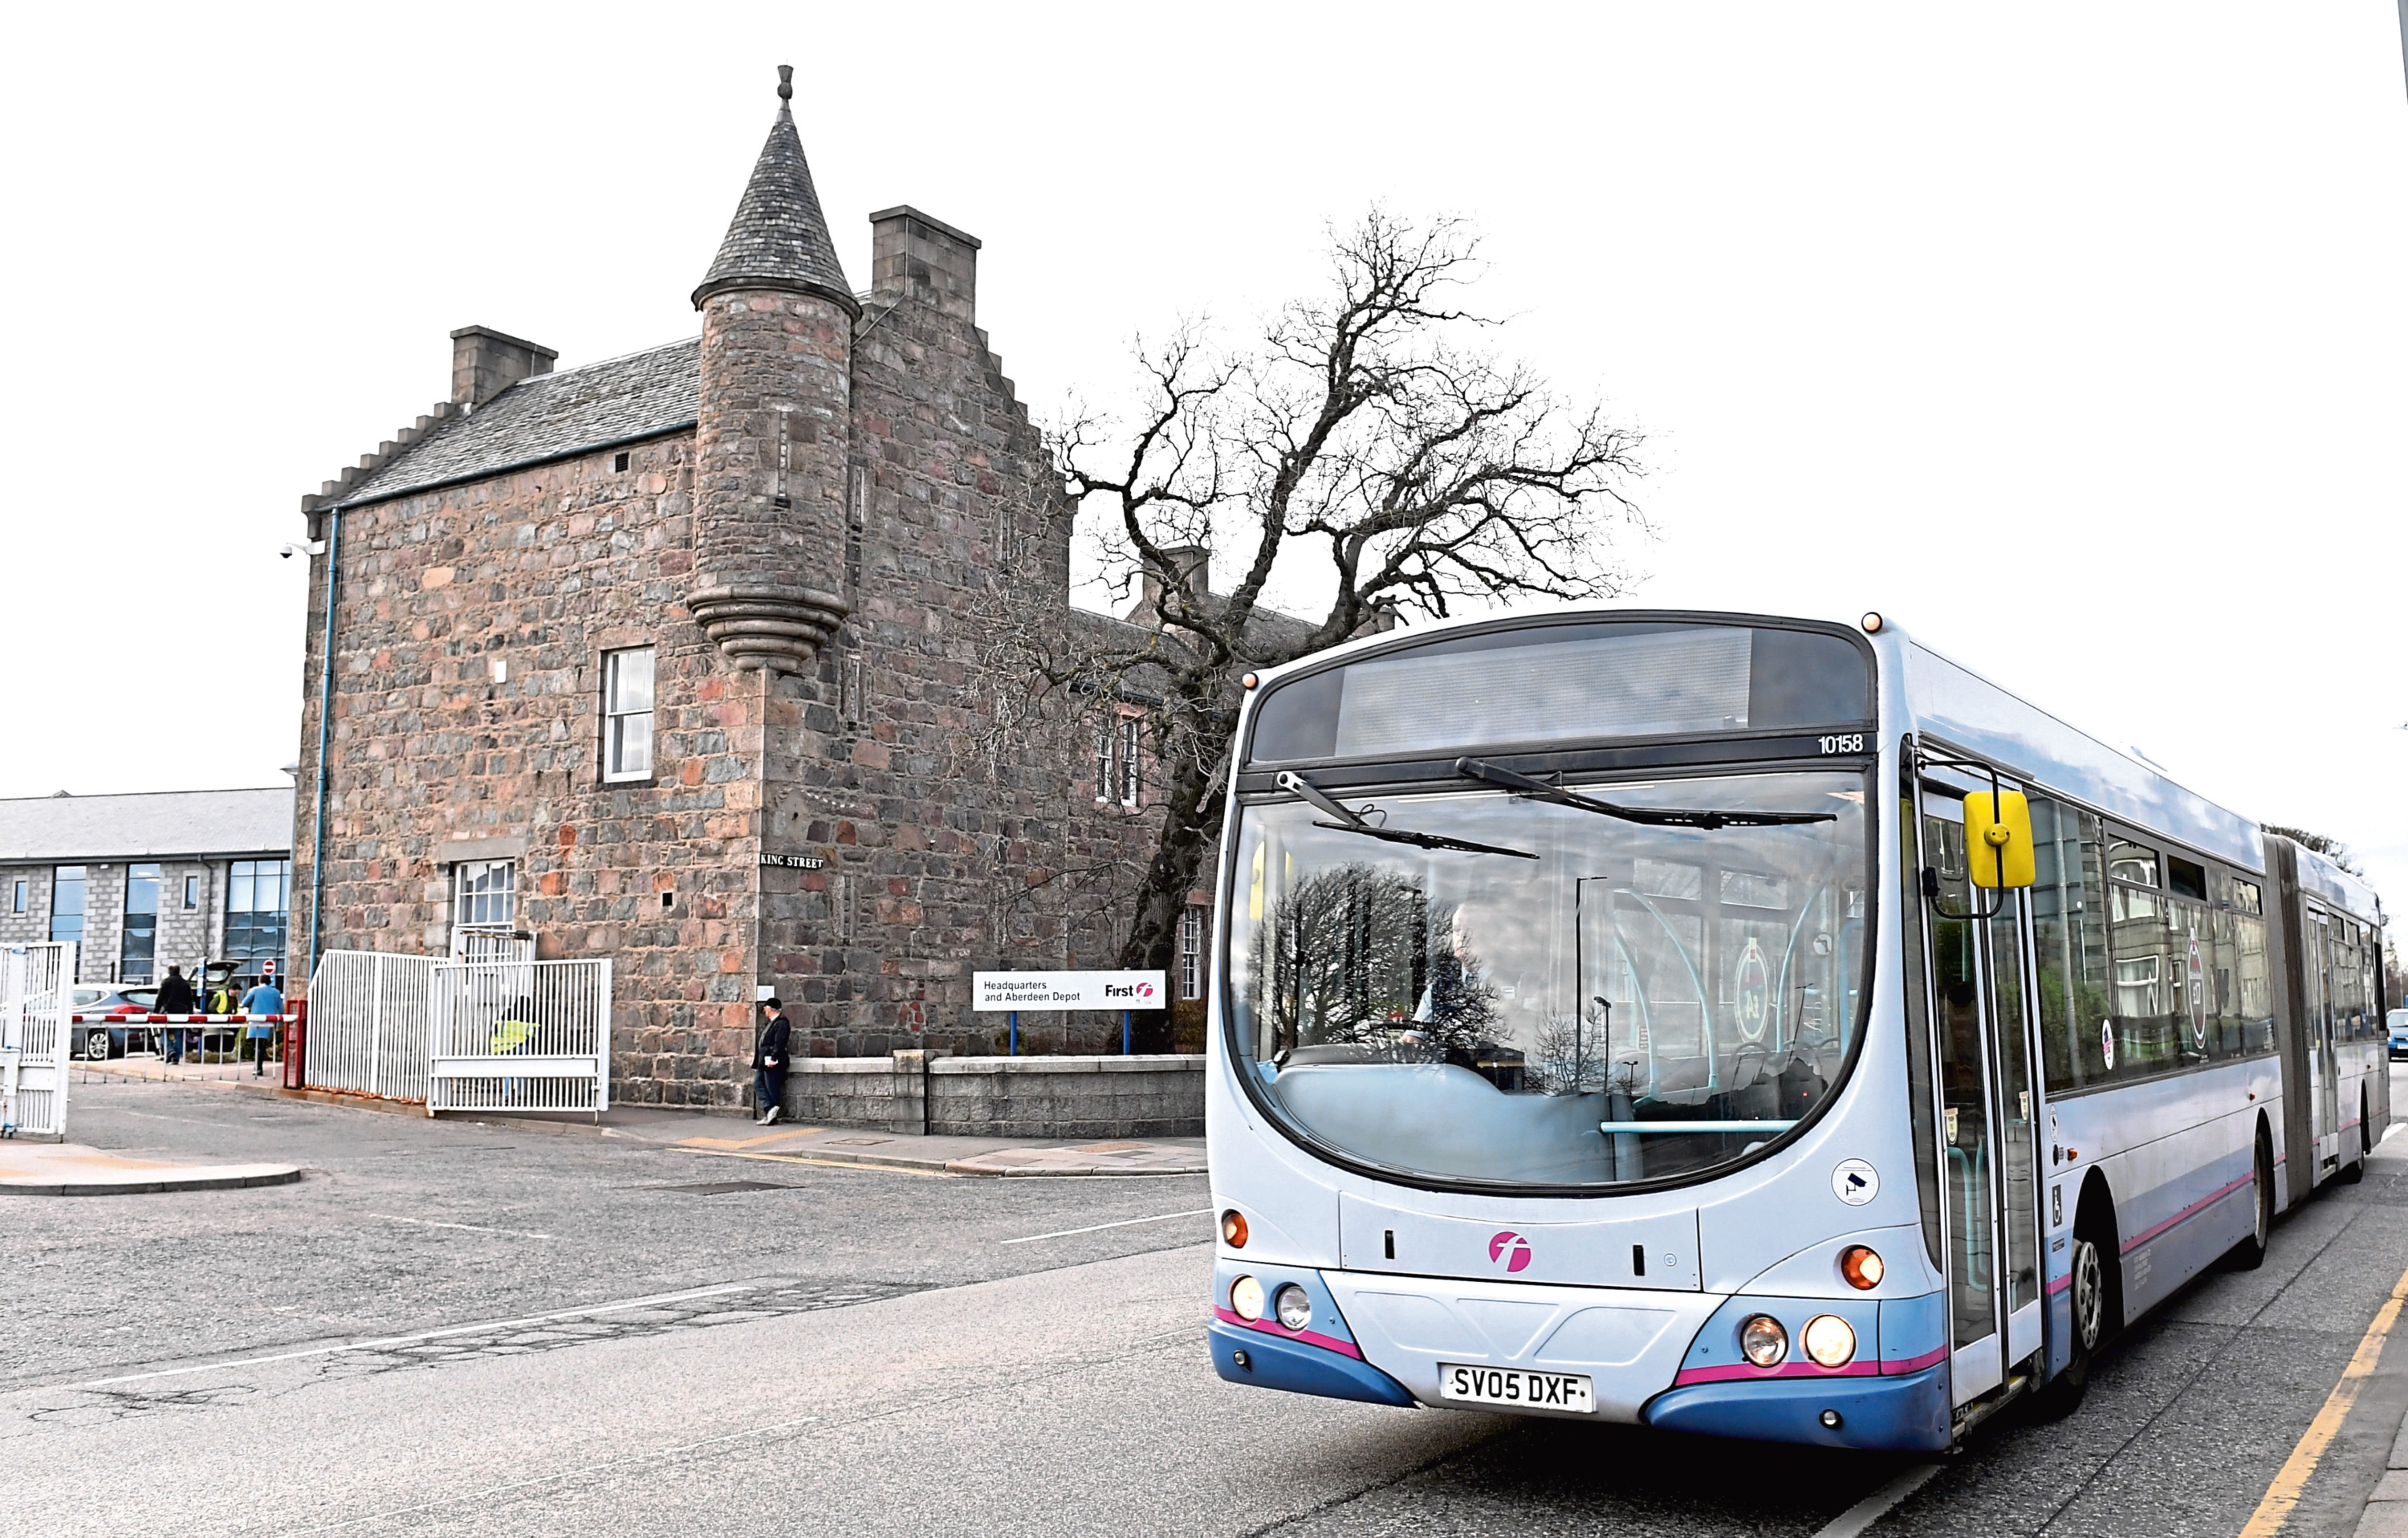 First Aberdeen launched a consultation on changing a number of services